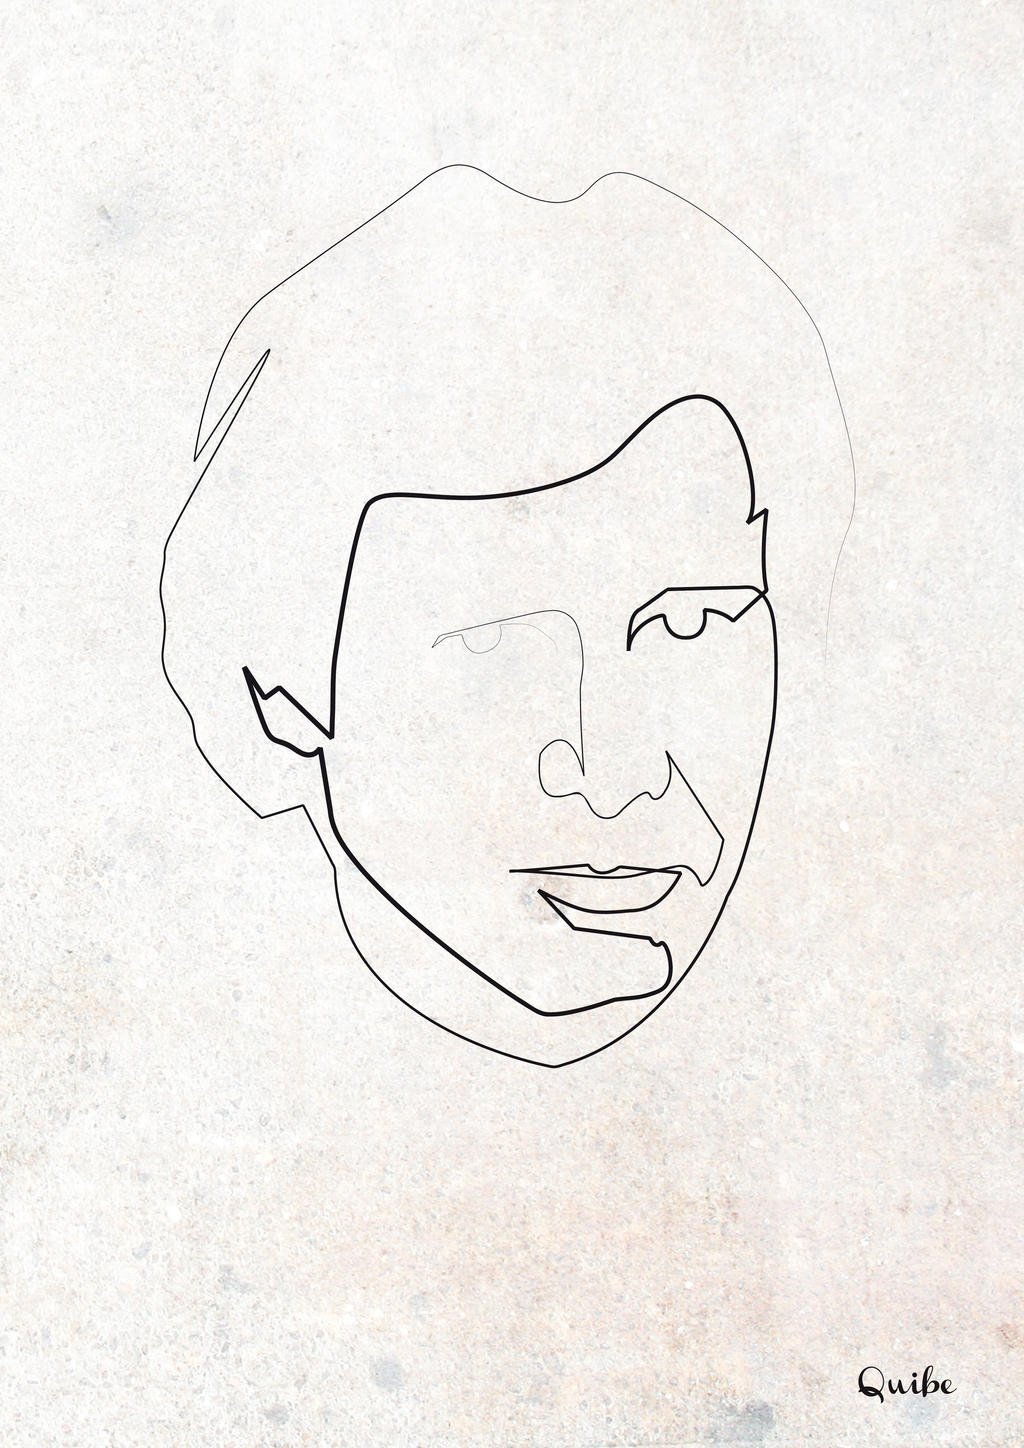 Continuous Line Drawing Quibe : One line han solo by quibe on deviantart